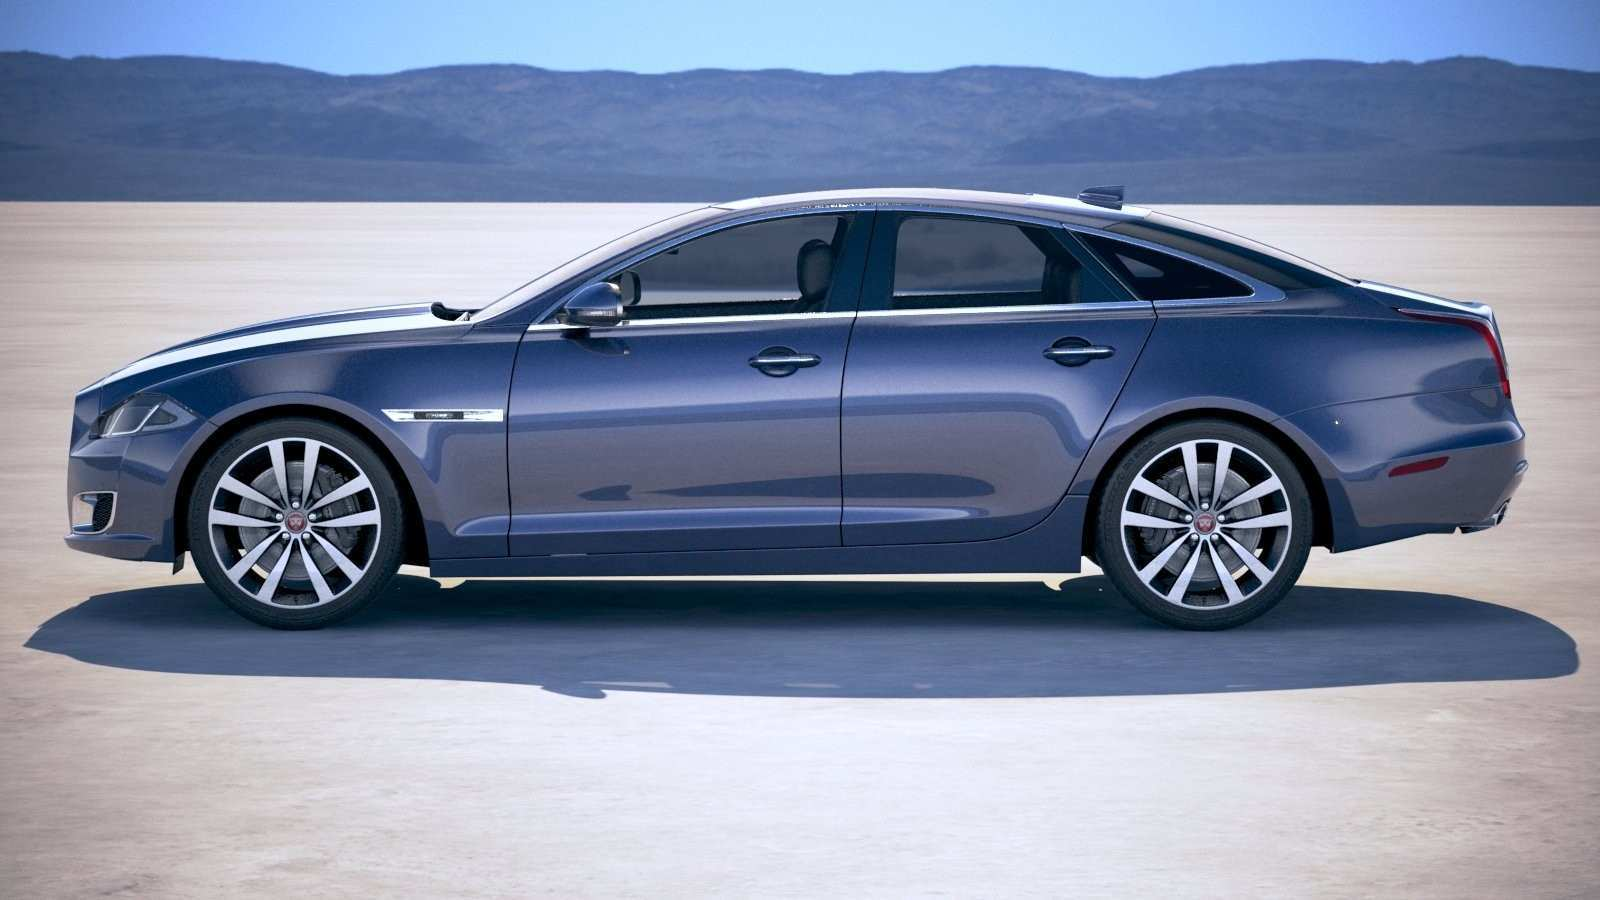 43 All New 2019 Jaguar Xj 50 Reviews for 2019 Jaguar Xj 50